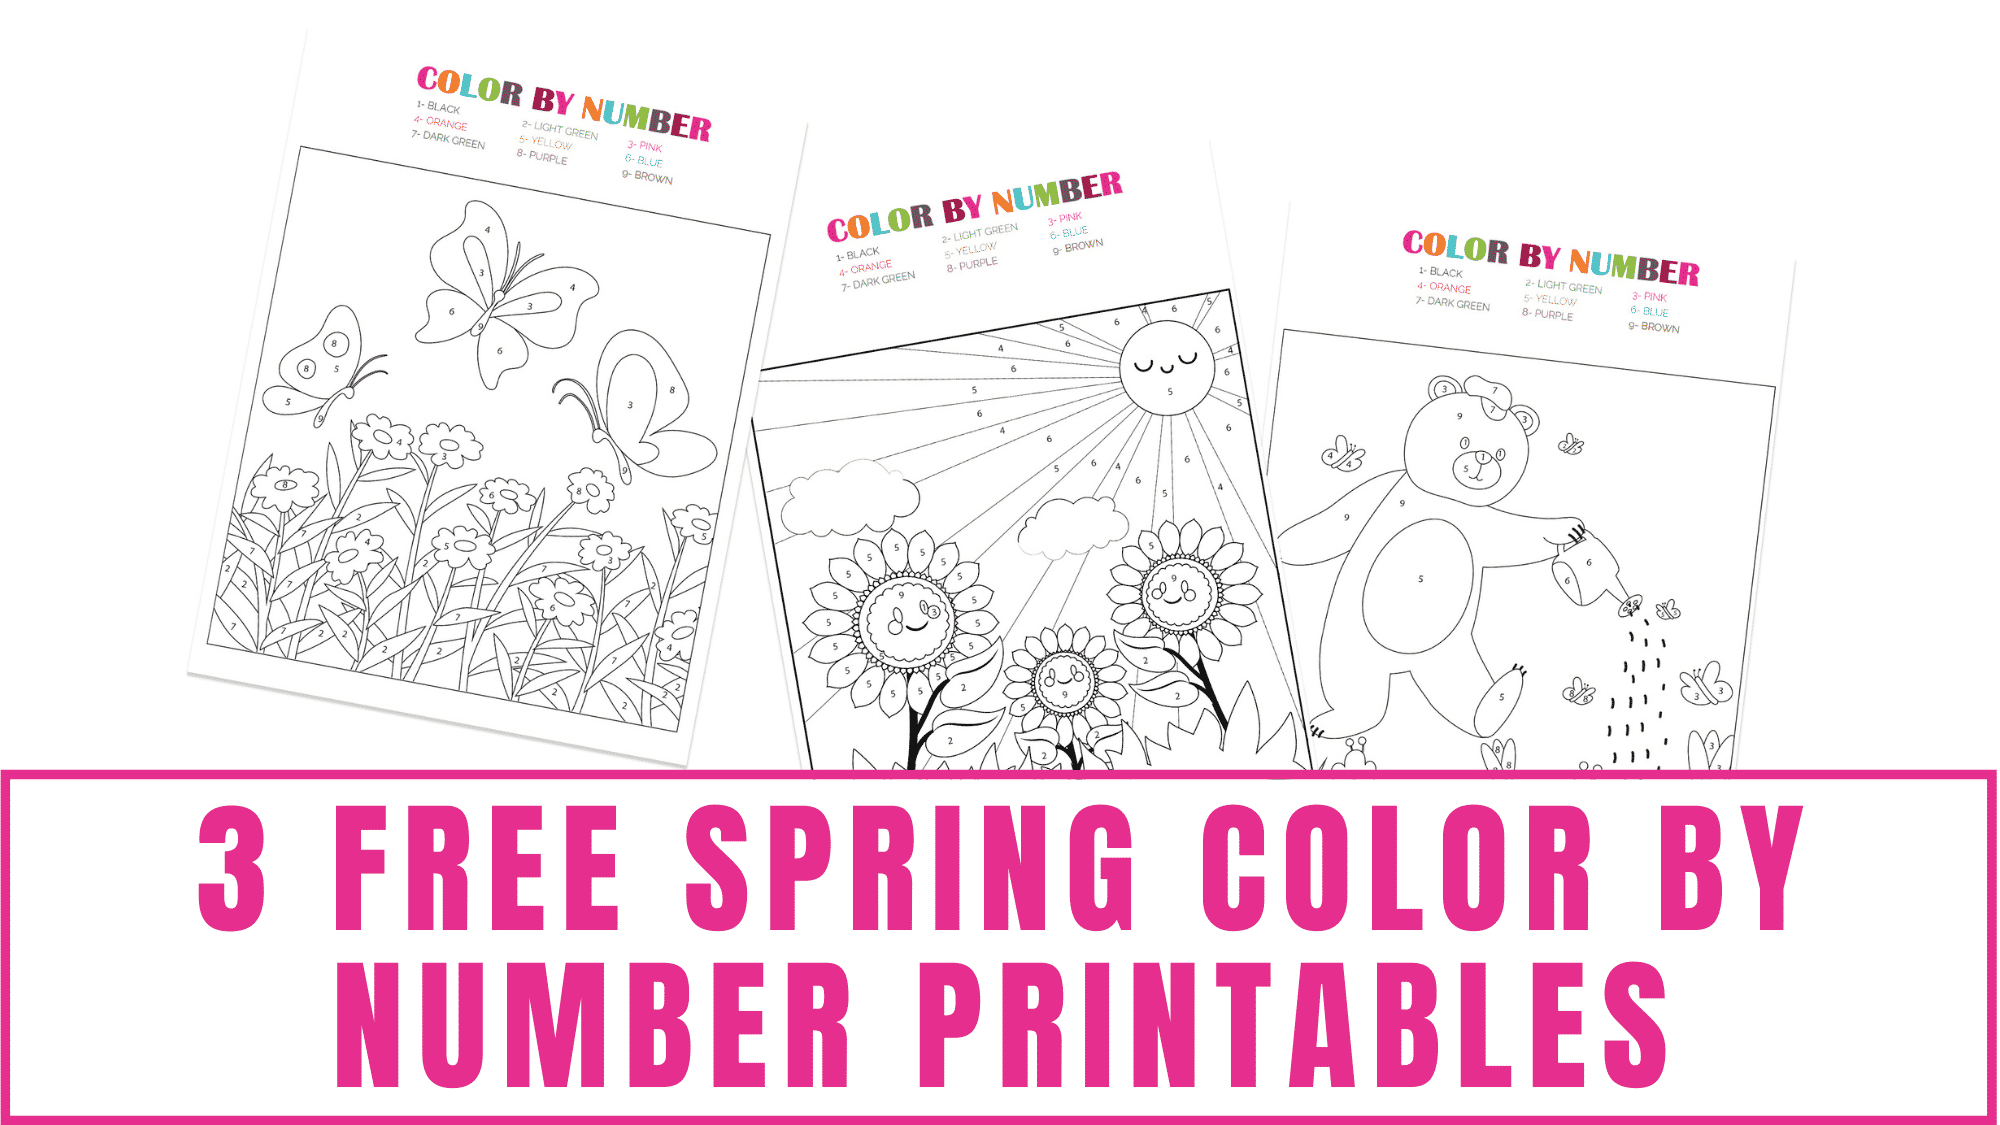 Did your kid complete the Halloween color by number printables and is looking for more color by number coloring pages? Download these free spring color by number printables for him/her.